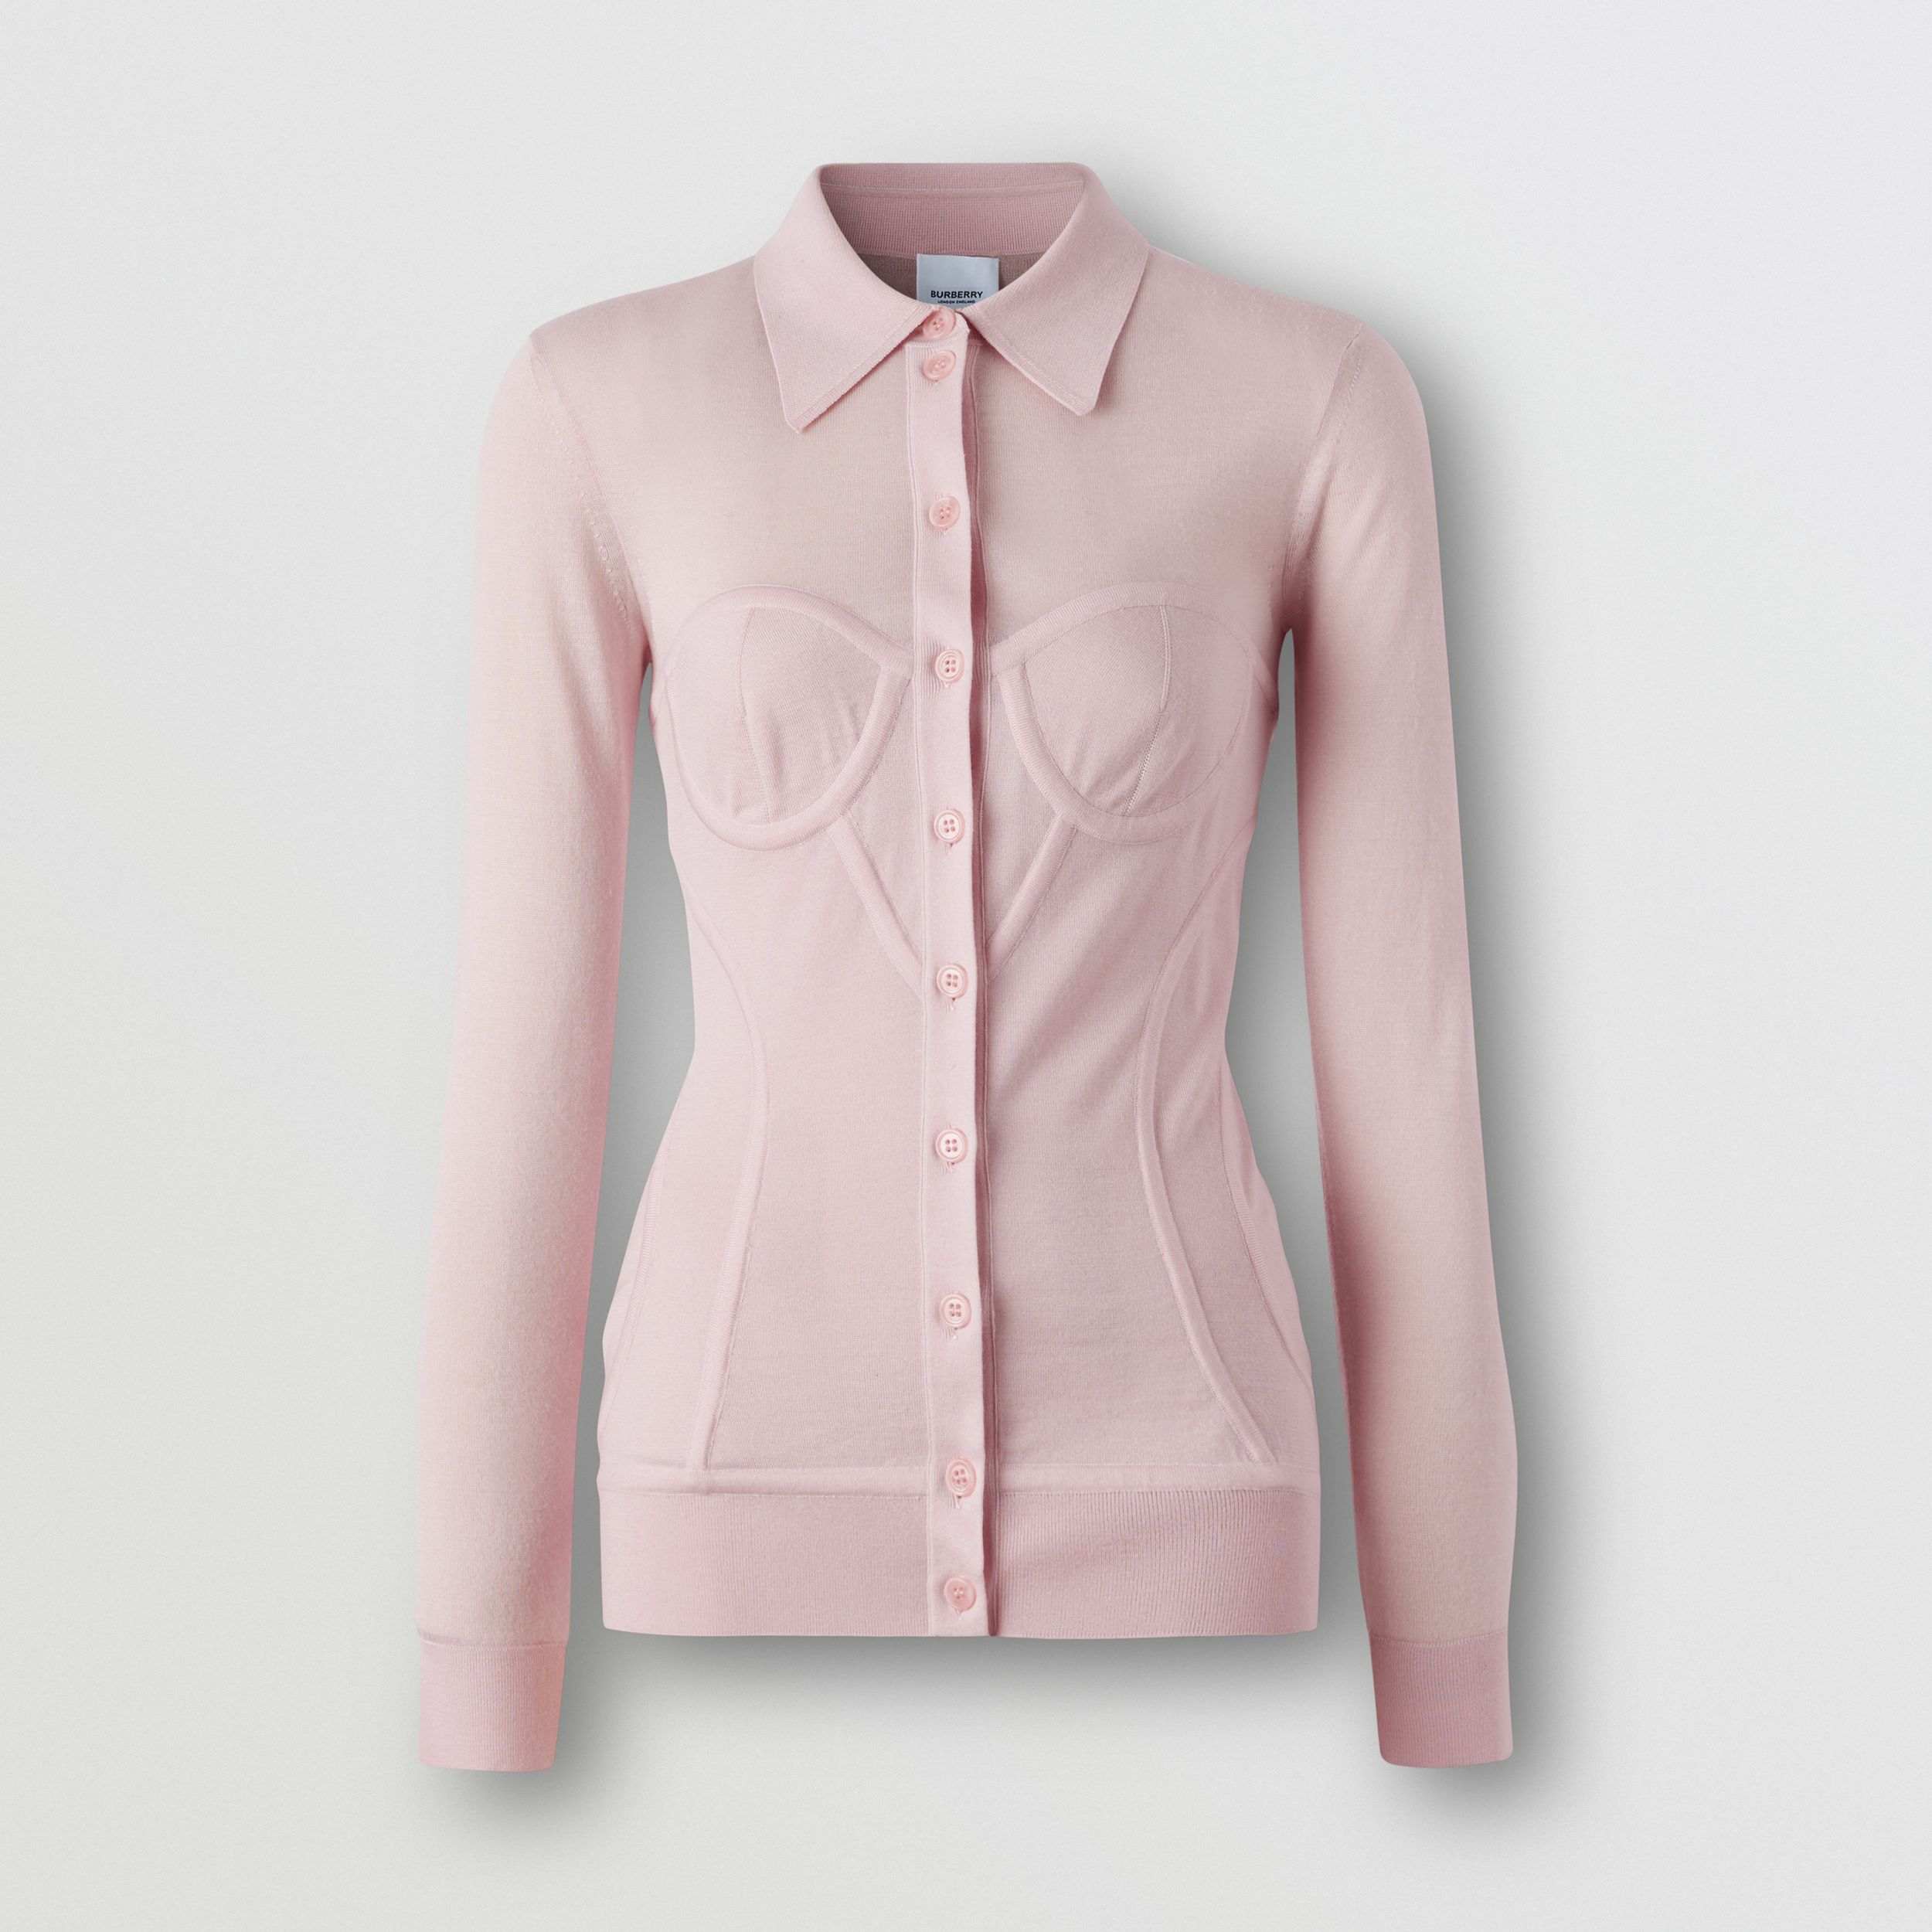 Corset Detail Knit Cashmere Silk Cardigan in Pale Pink - Women | Burberry - 4